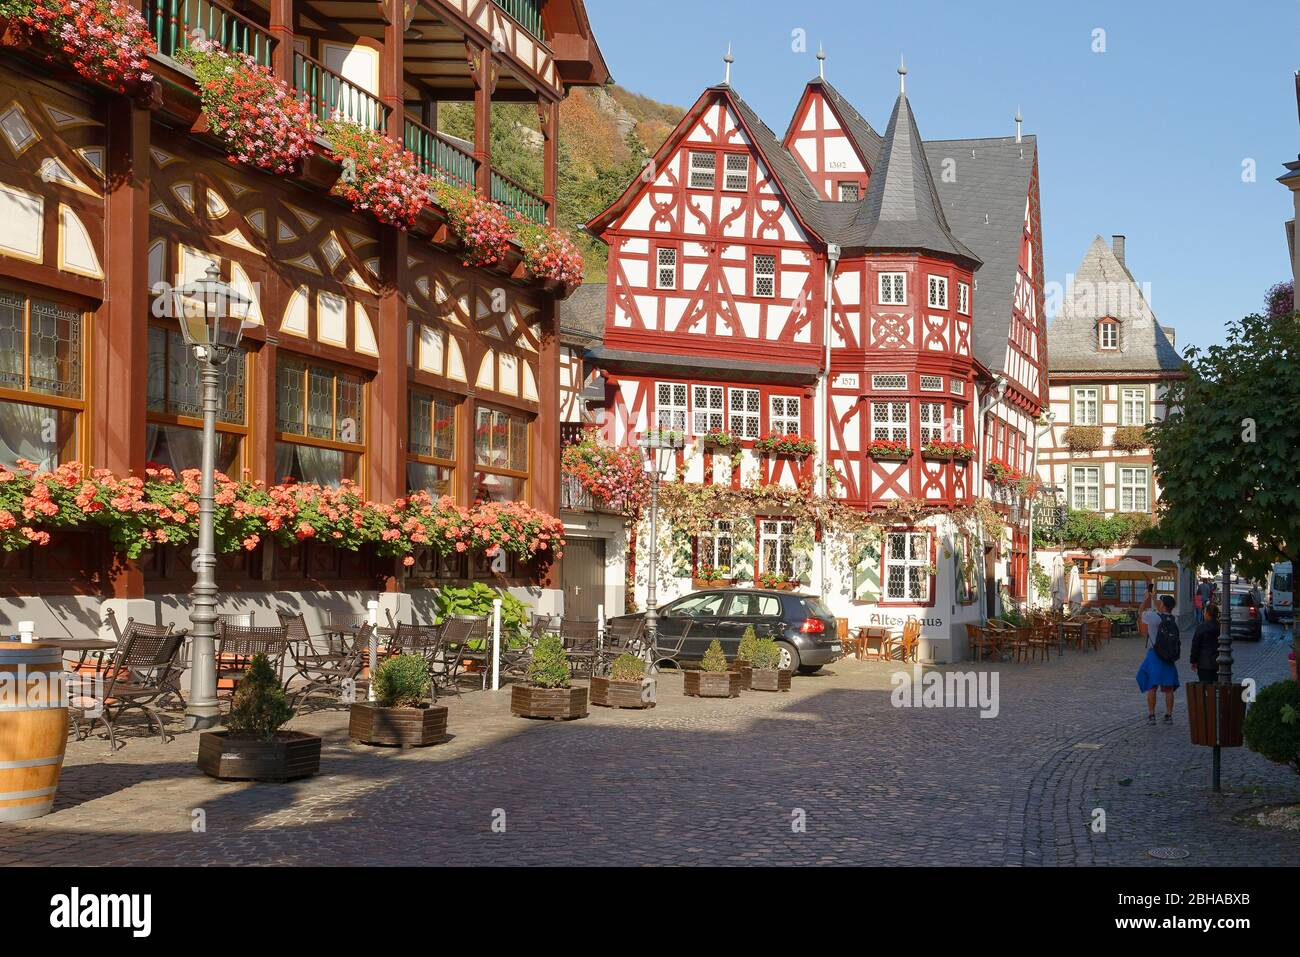 Old marketplace with half-timbered houses in Bacharach am Rhein, Bacharach, Rhine Valley, UNESCO World Heritage Upper Middle Rhine Valley, Rhineland-Palatinate, Germany Stock Photo